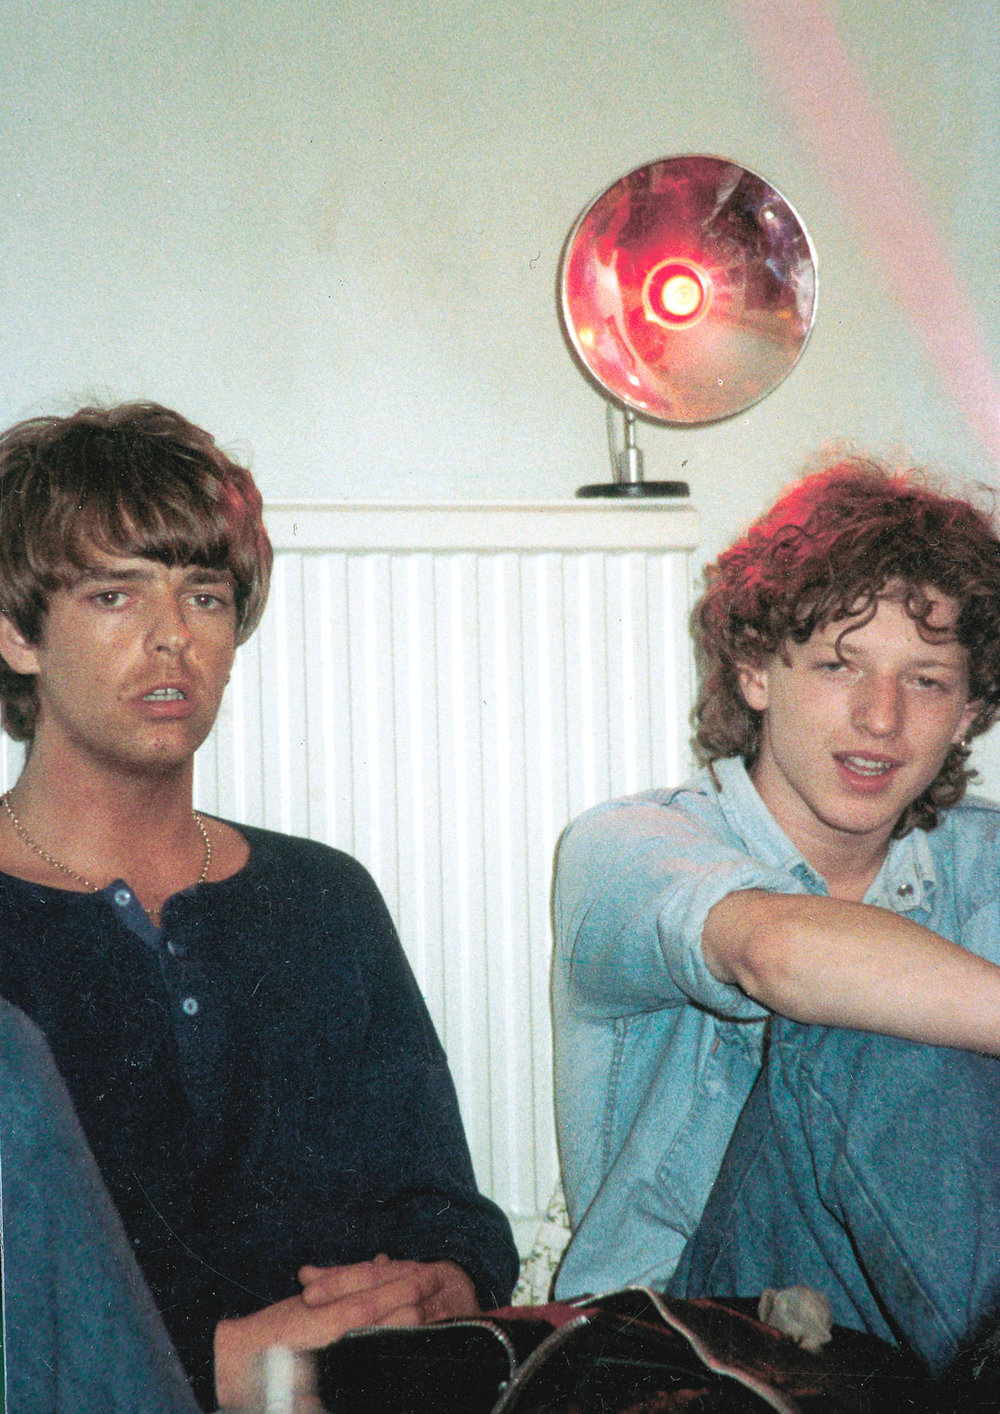 12 Lee Mavers & John Power_Andy Summerton 21st Birthday, 11 June 88.jpg